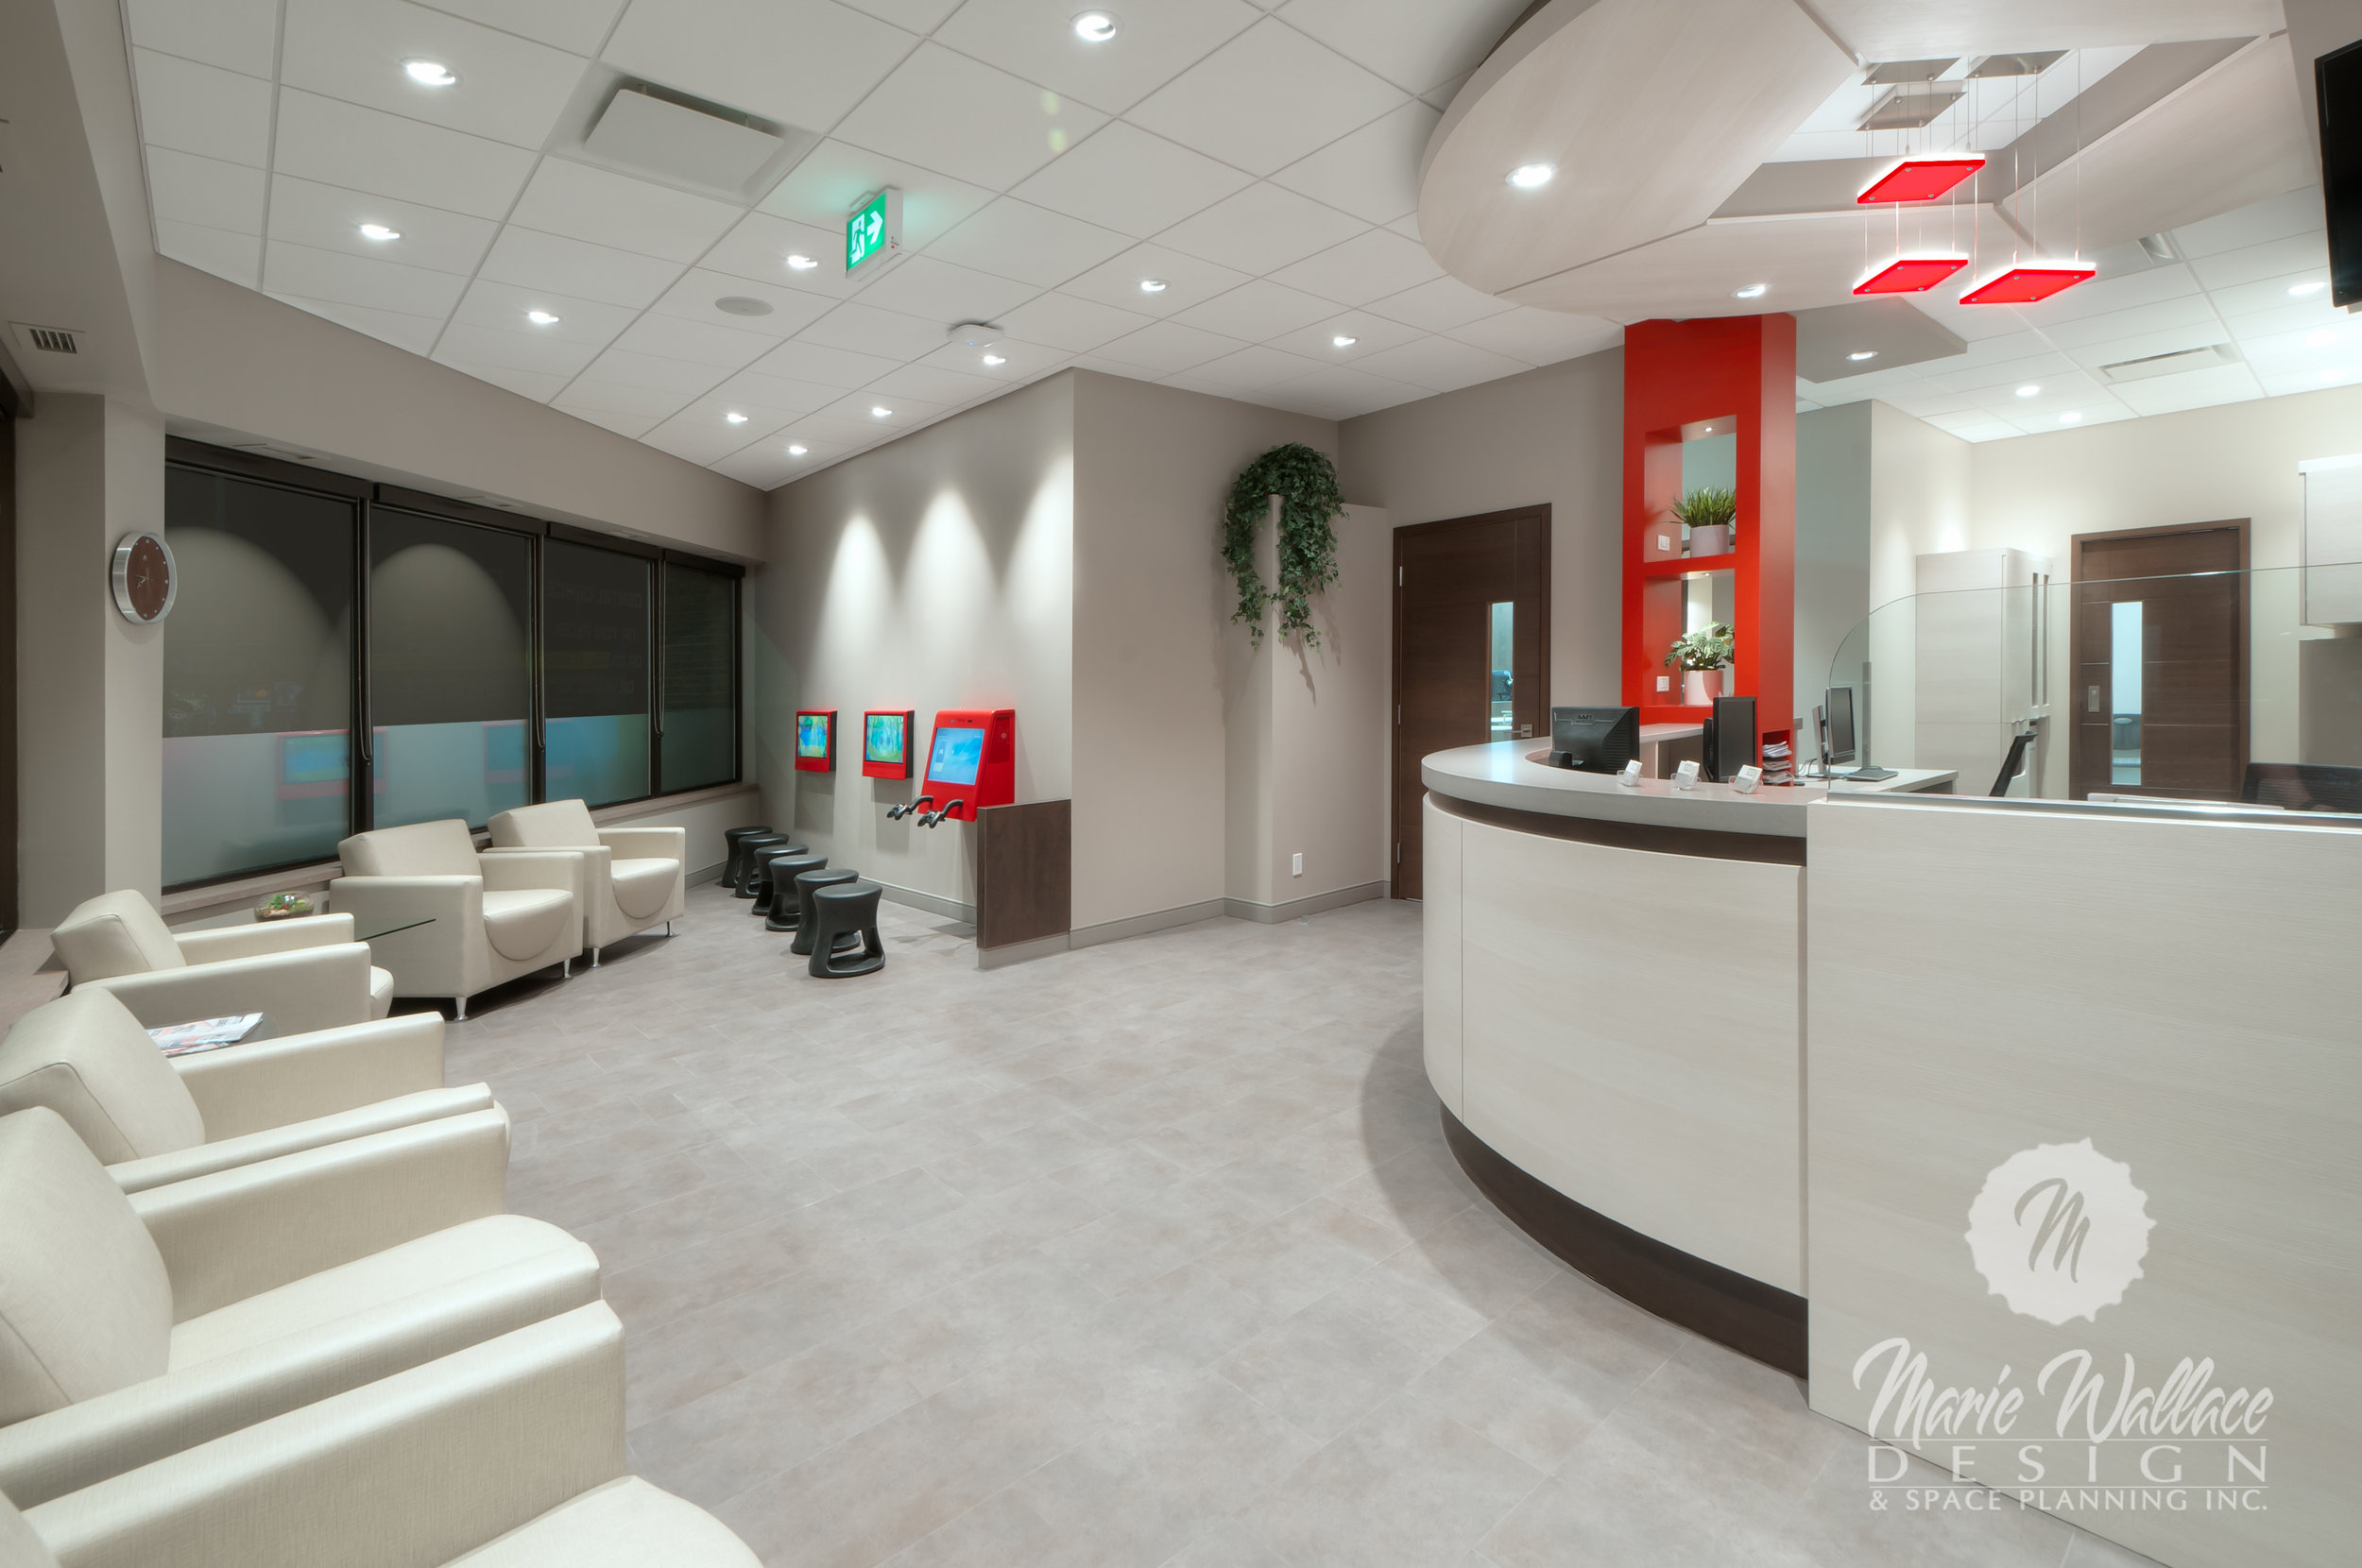 Centre and 12th Dental -